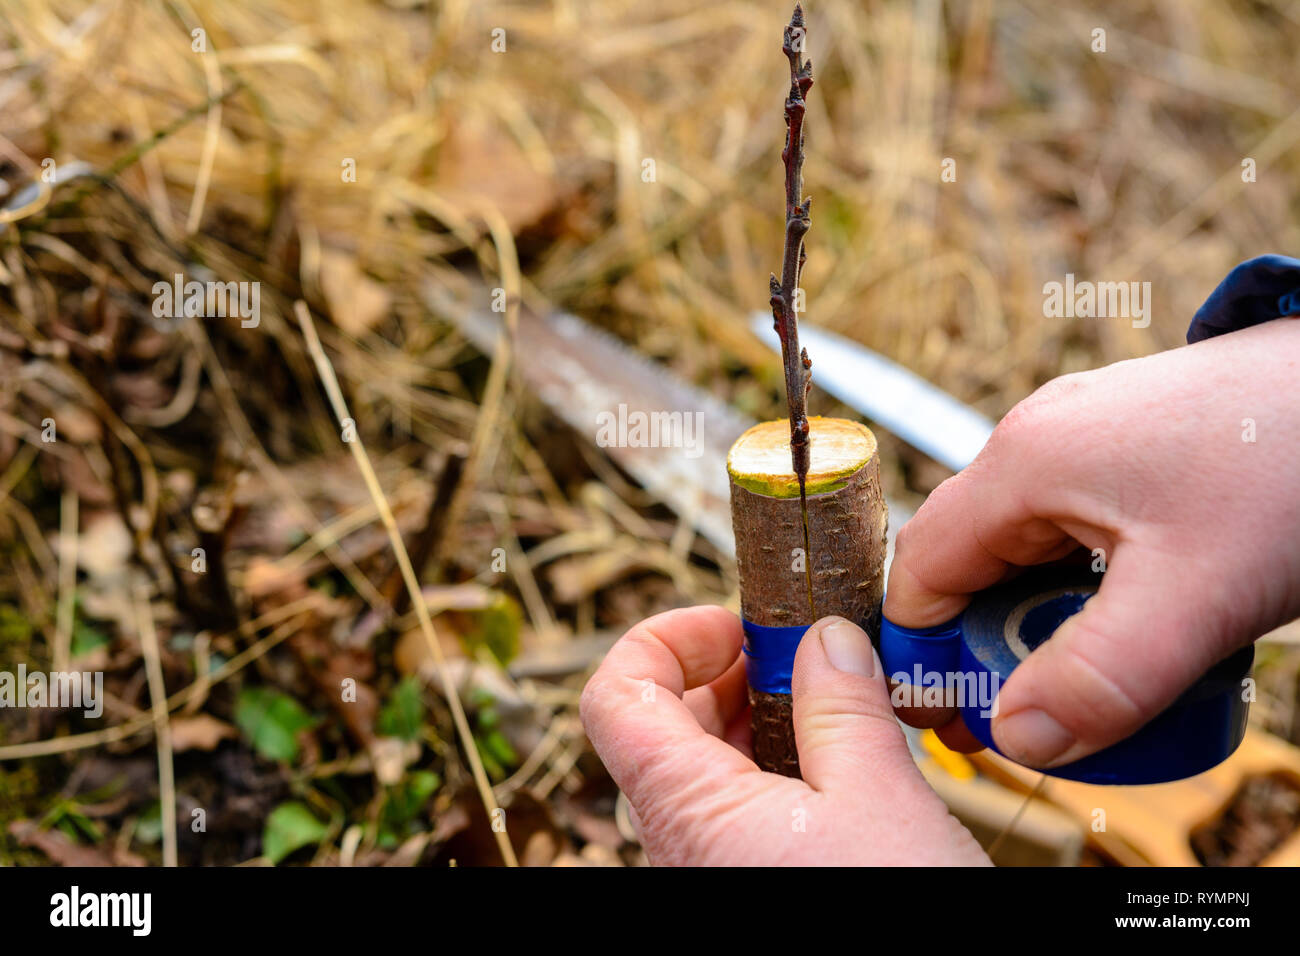 Woman wraps a graft tree with an insulating tape in the garden to detain the damp in it in close-up - Stock Image